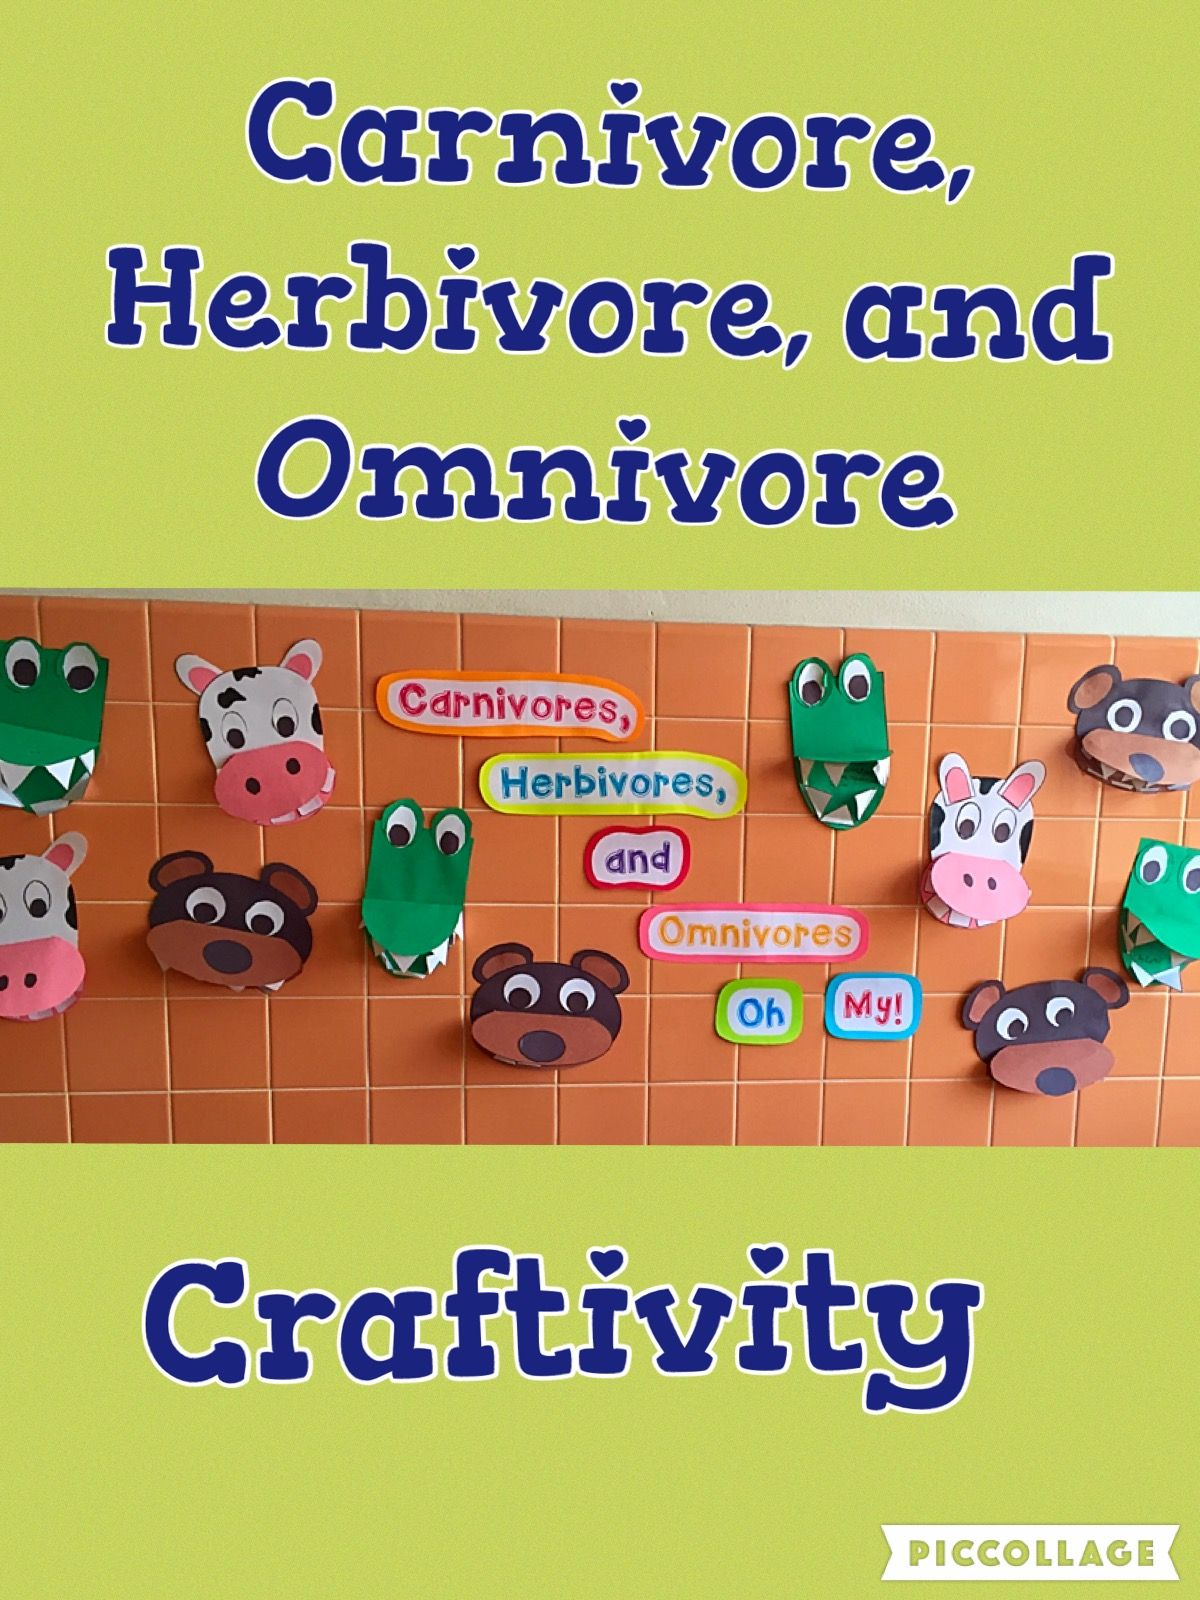 Carnivore, Herbivore, & Omnivore Craftivities and